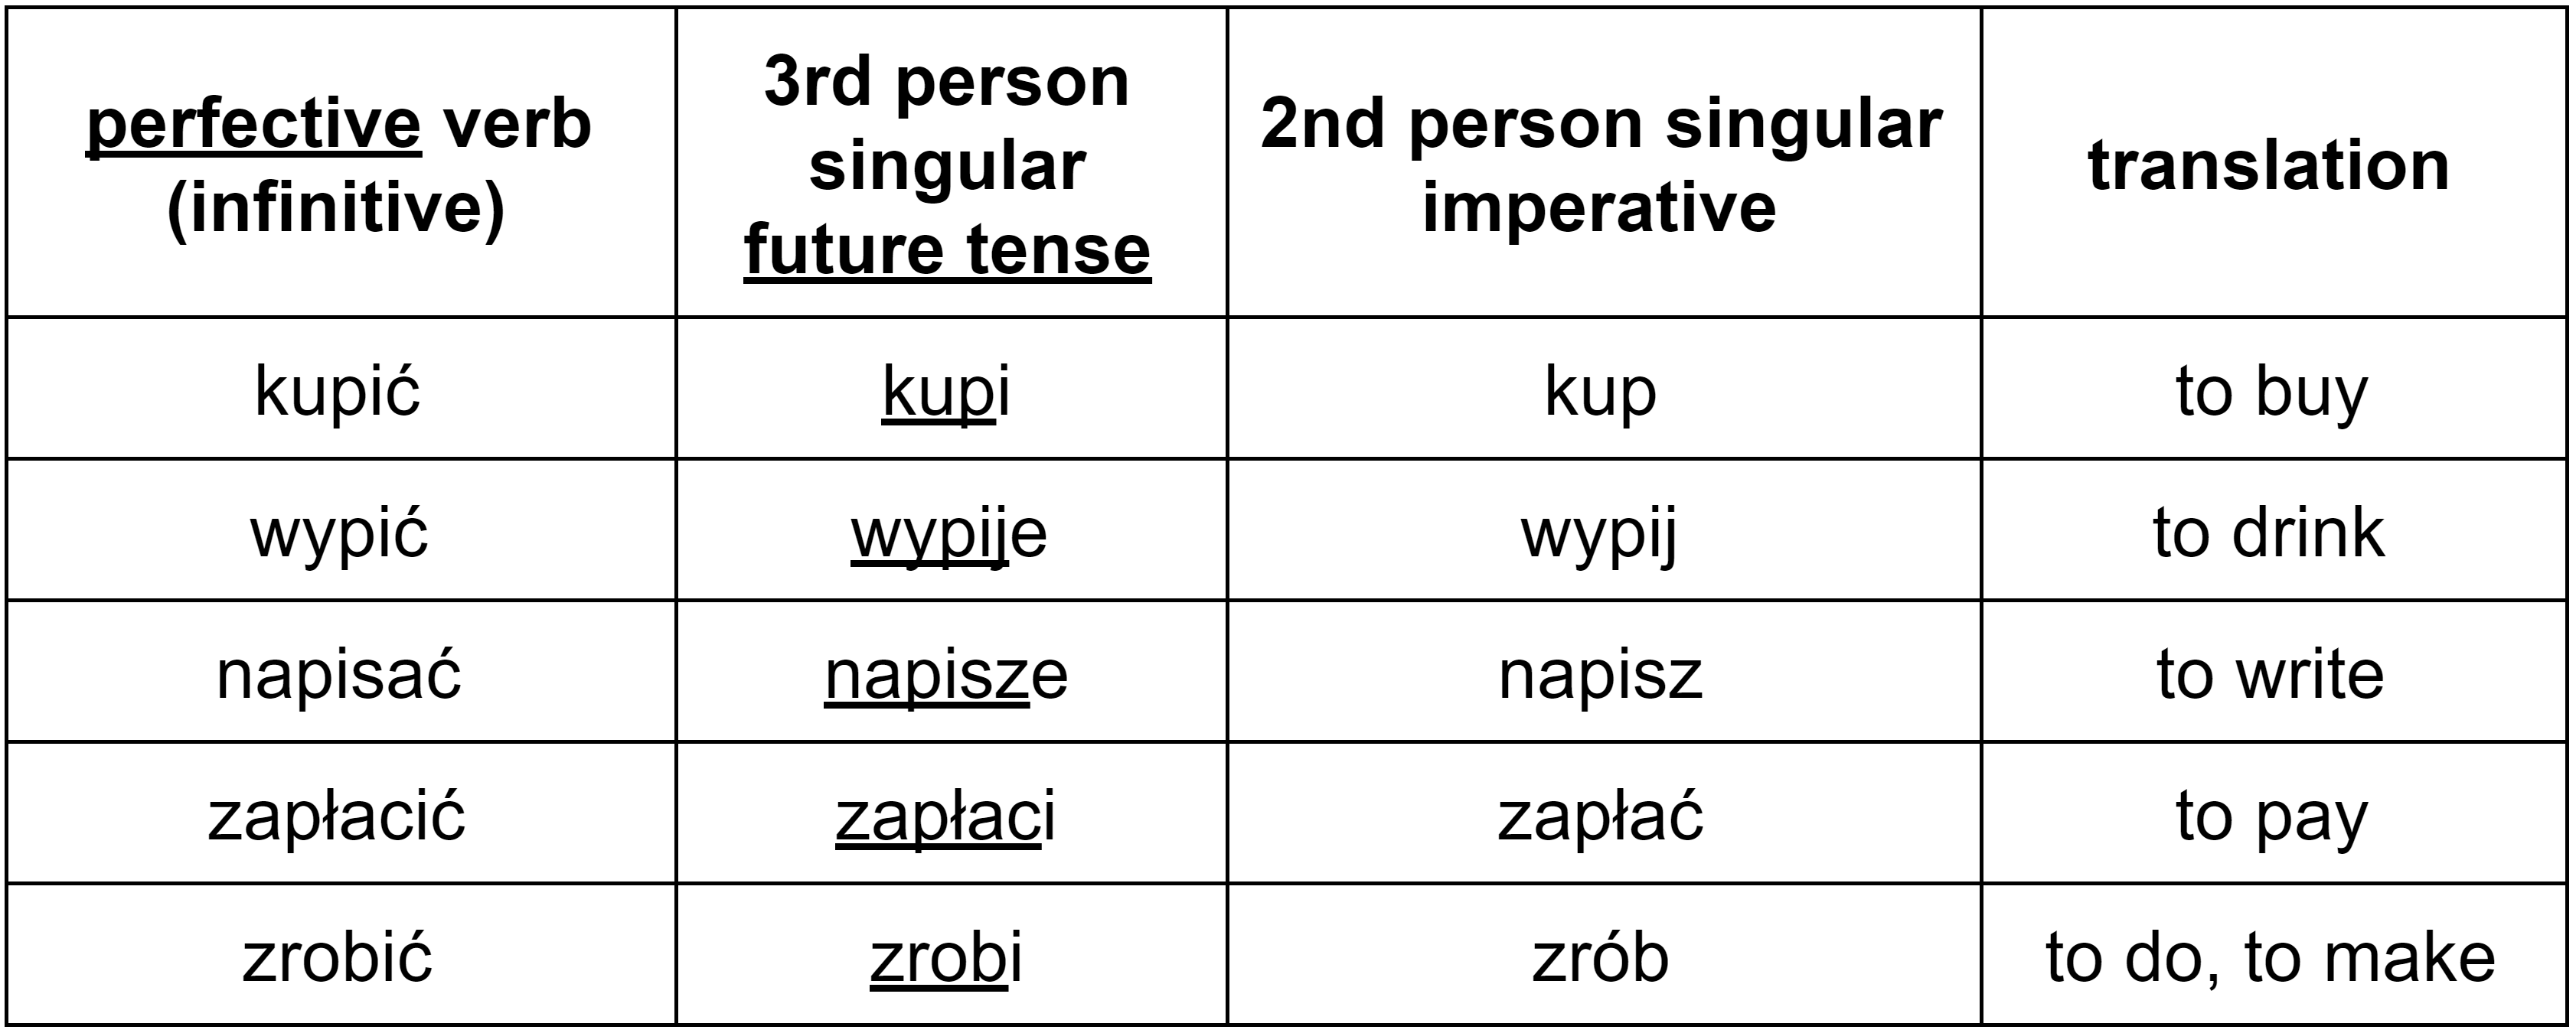 Polish perfective imperative verbs in the second person singular table